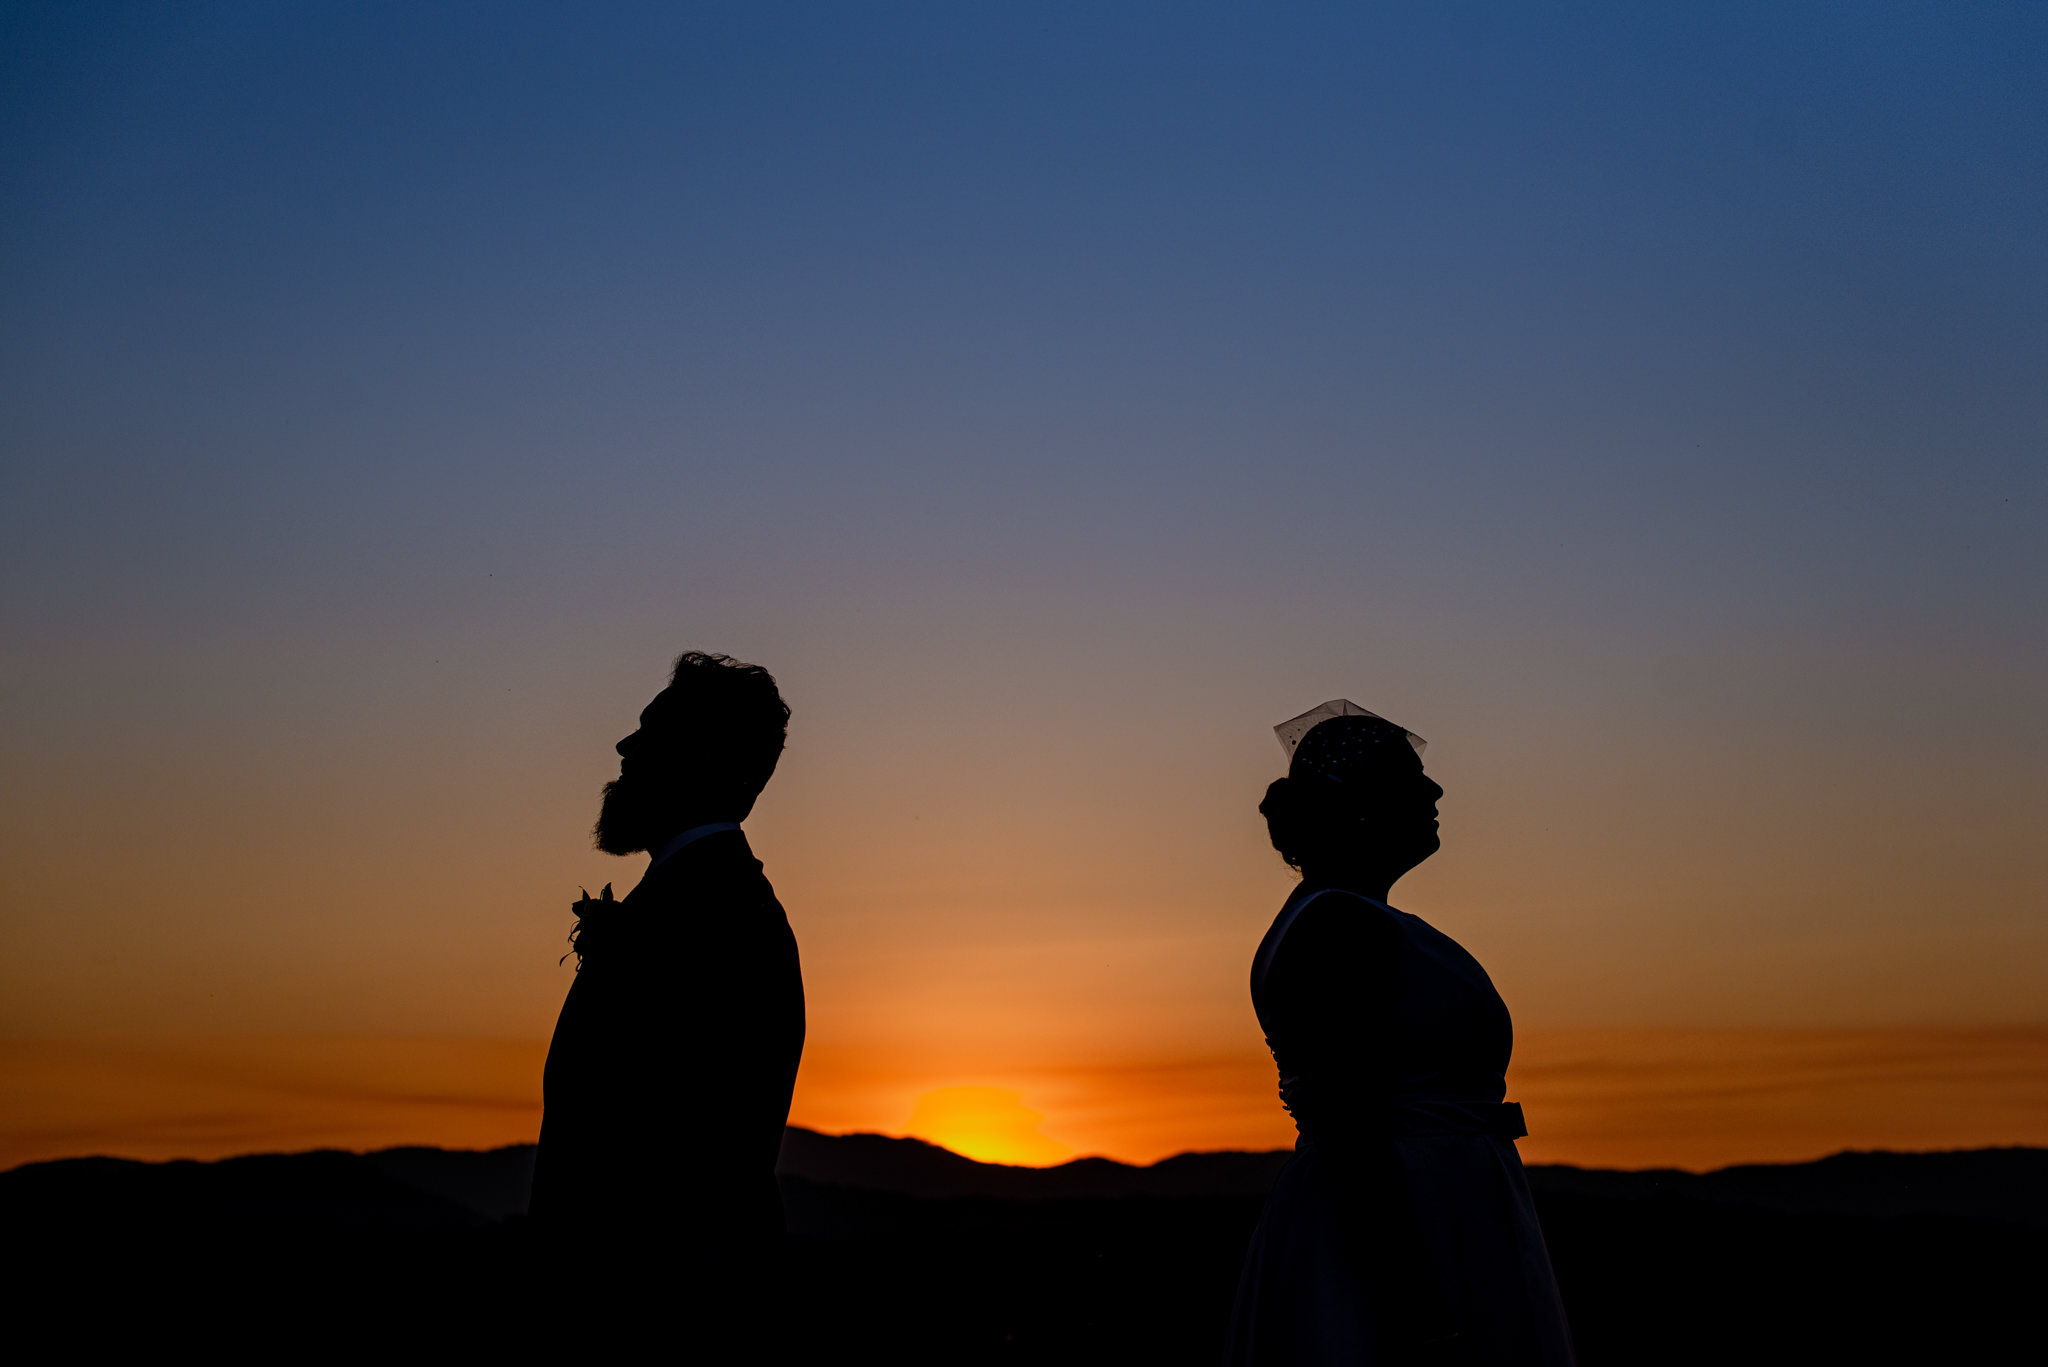 A silhouette of a bride and groom back to back against a vibrant sunset